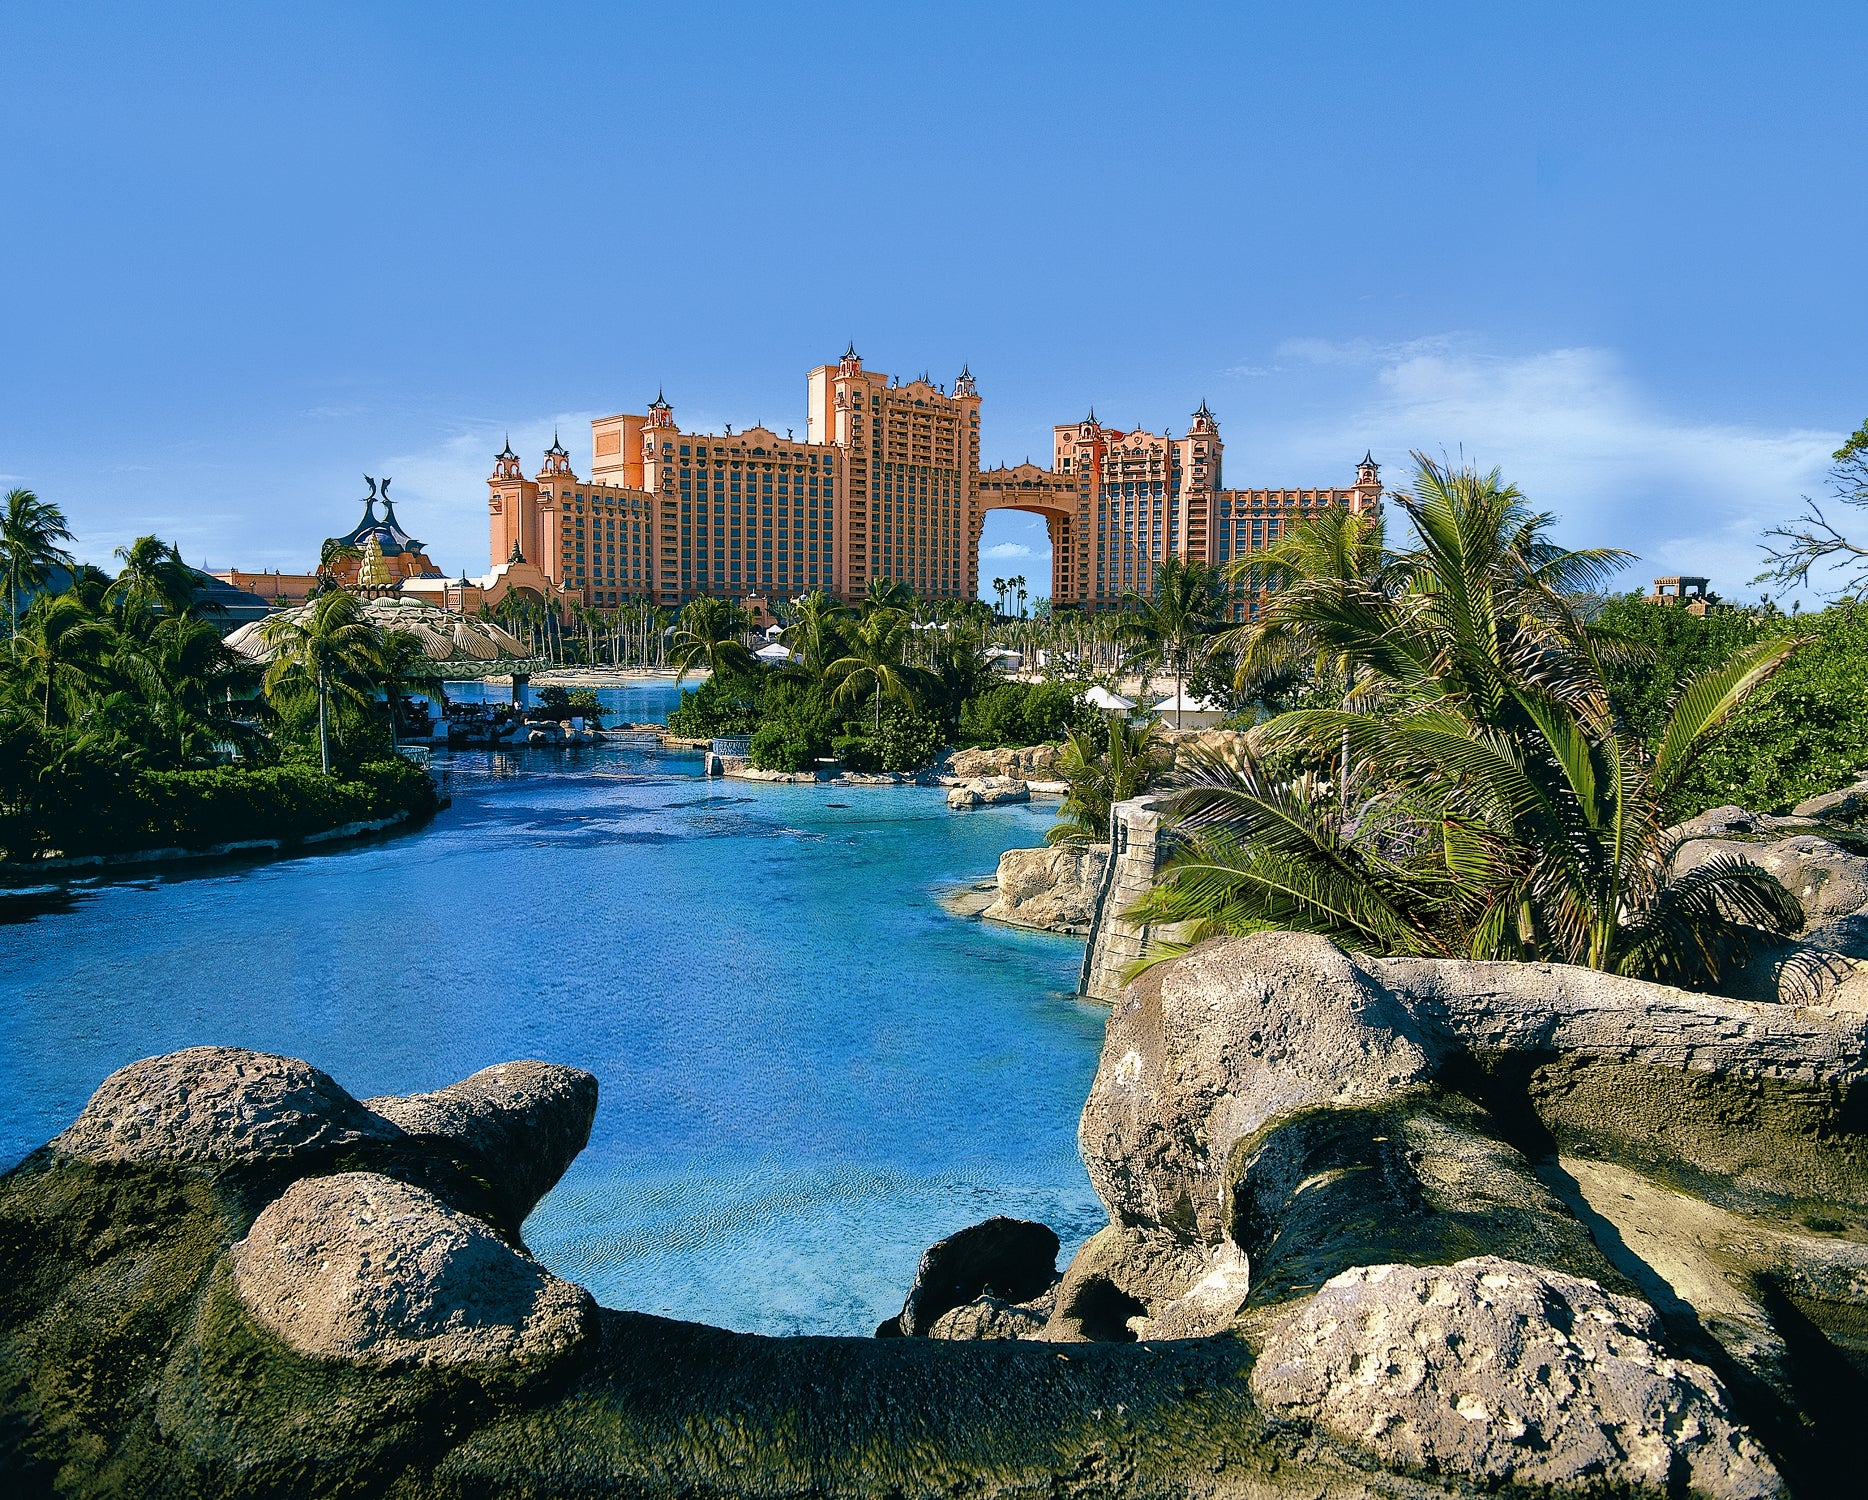 Atlantis Bahamas and Baha Mar are ready to reopen for holiday travel after COVID-19 closure